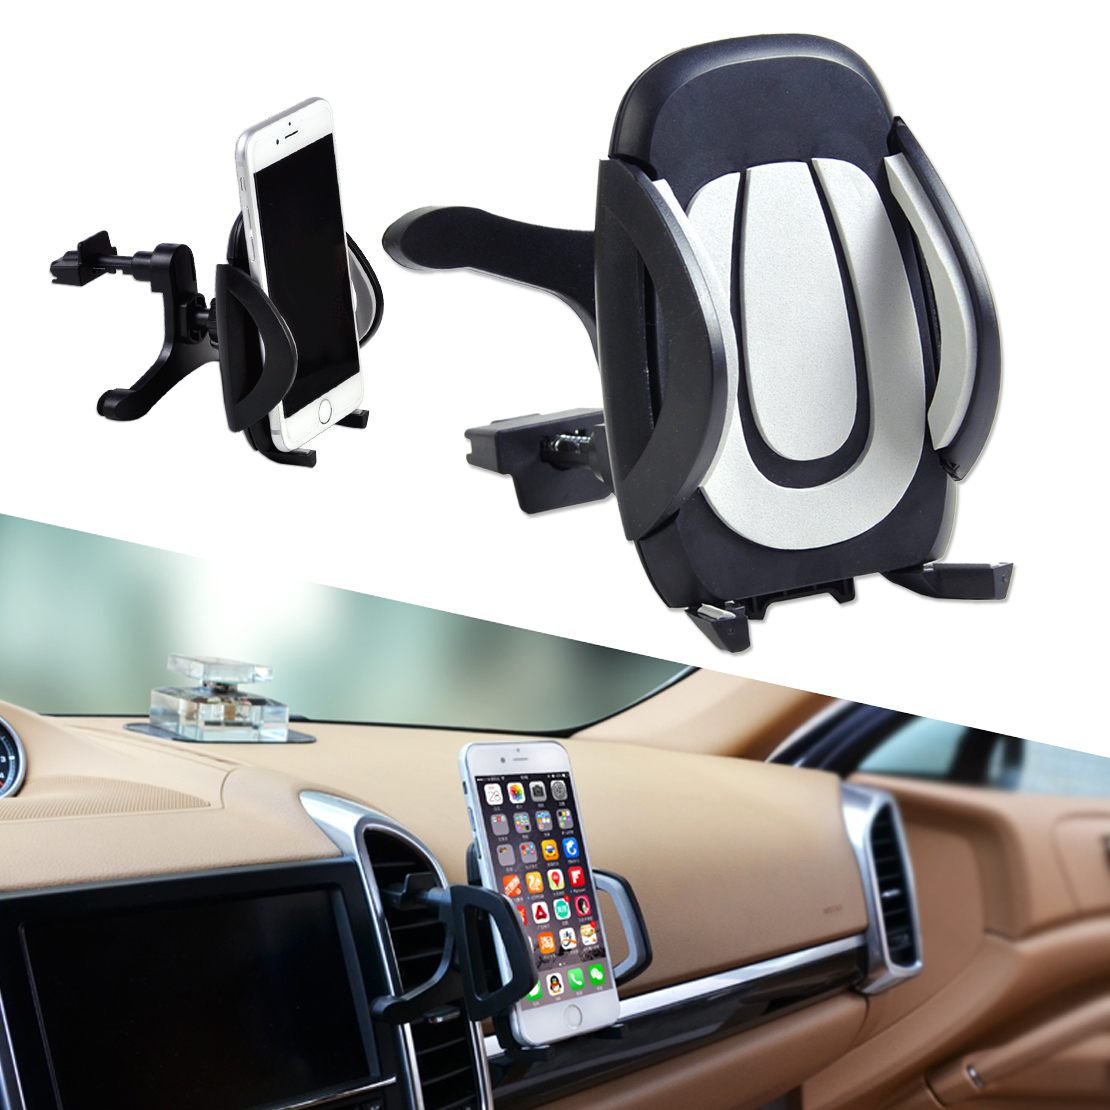 360 176 Car Air Vent Holder Stand Cradle Mount For Iphone Samsung Mobile Cell Phone Ebay